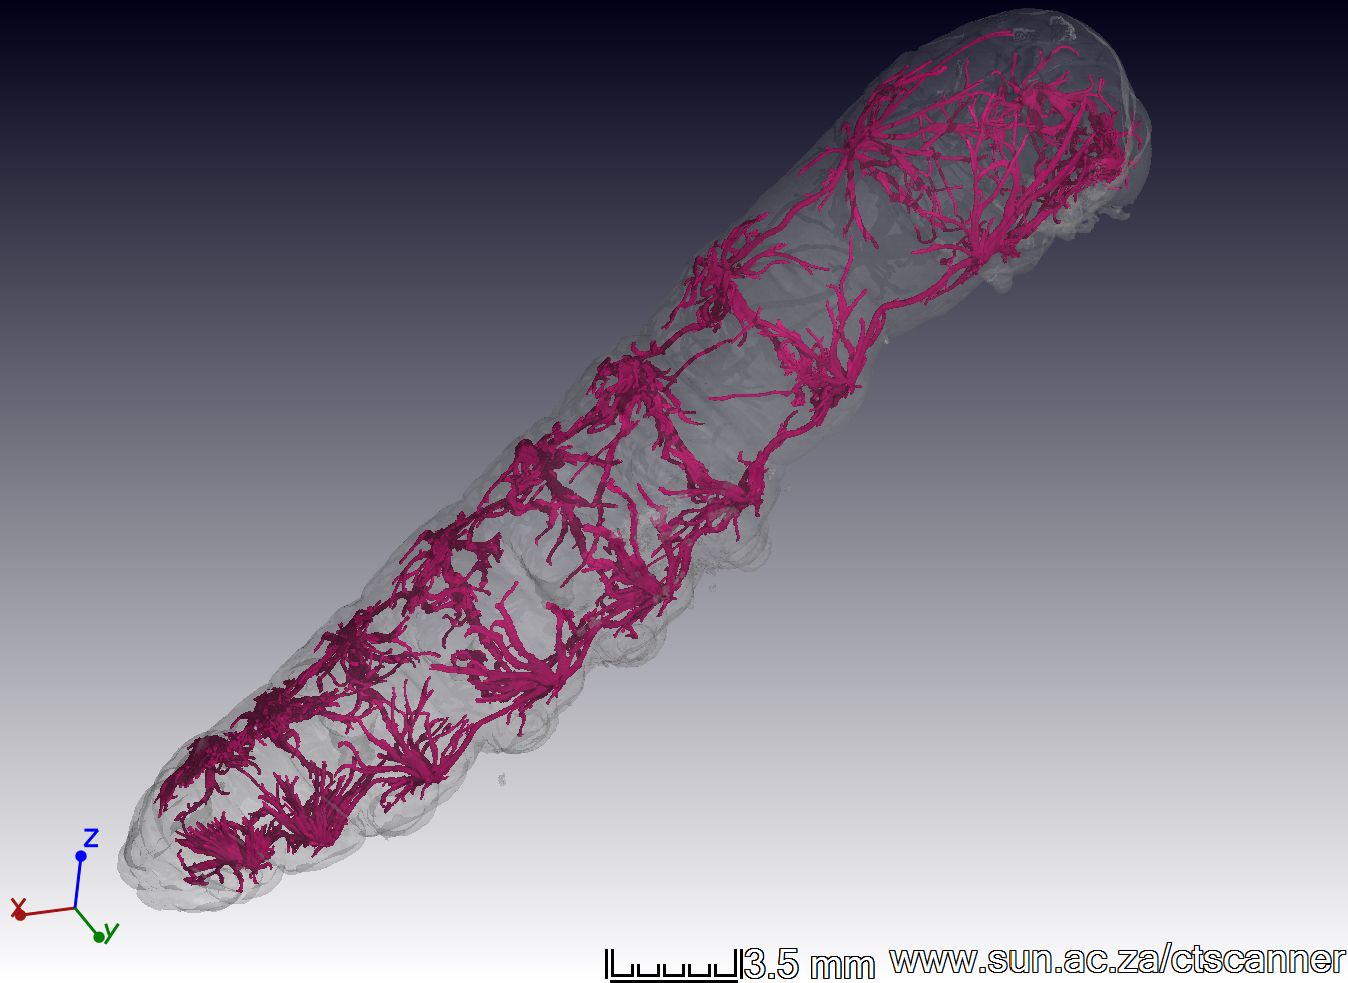 X-ray 3D CT scan of a silkworm (Bombyx mori) larval tracheal system (scale bar shows 3.5 mm.) Image taken by Leigh Boardman with technical assistance from Anton Du Plessis, Central Analytical Facilities at Stellenbosch University.